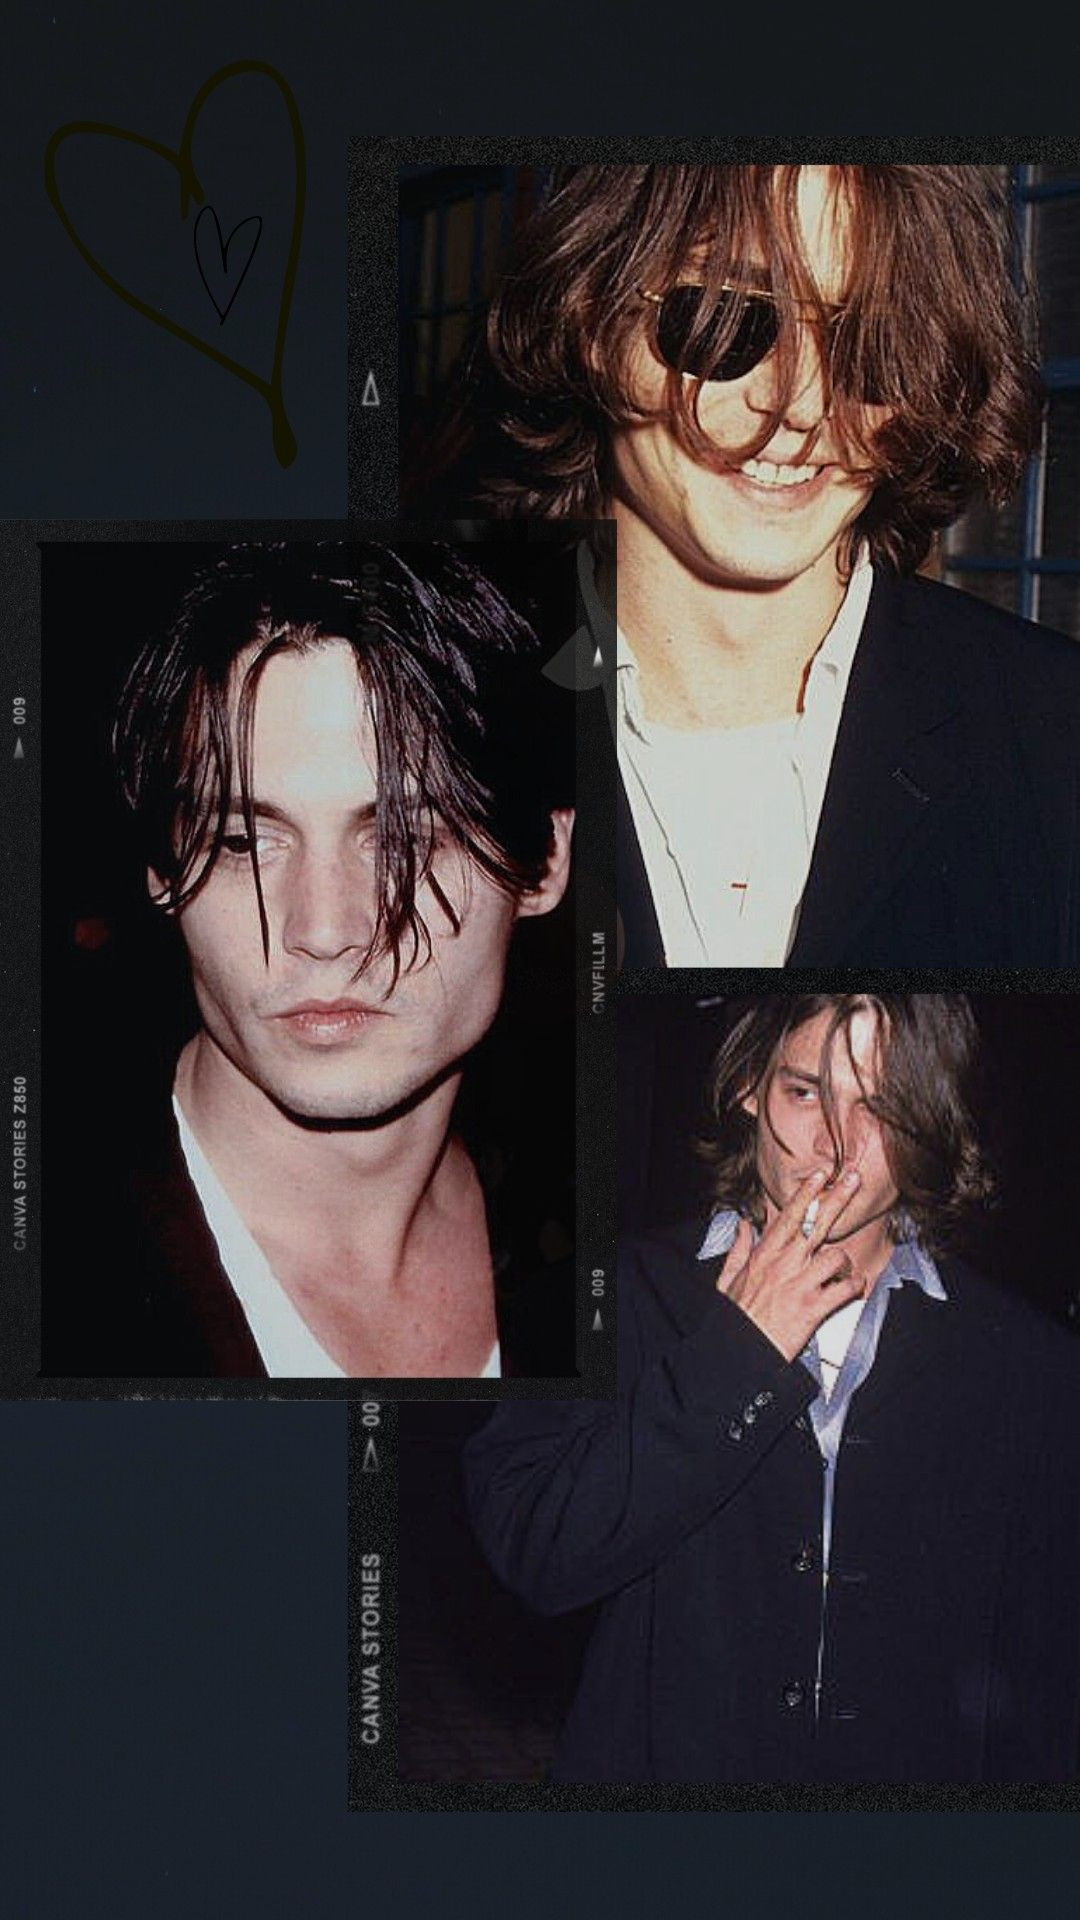 Johnny Depp Wallpaper Young Johnny Depp Johnny Depp Wallpaper Johnny Depp